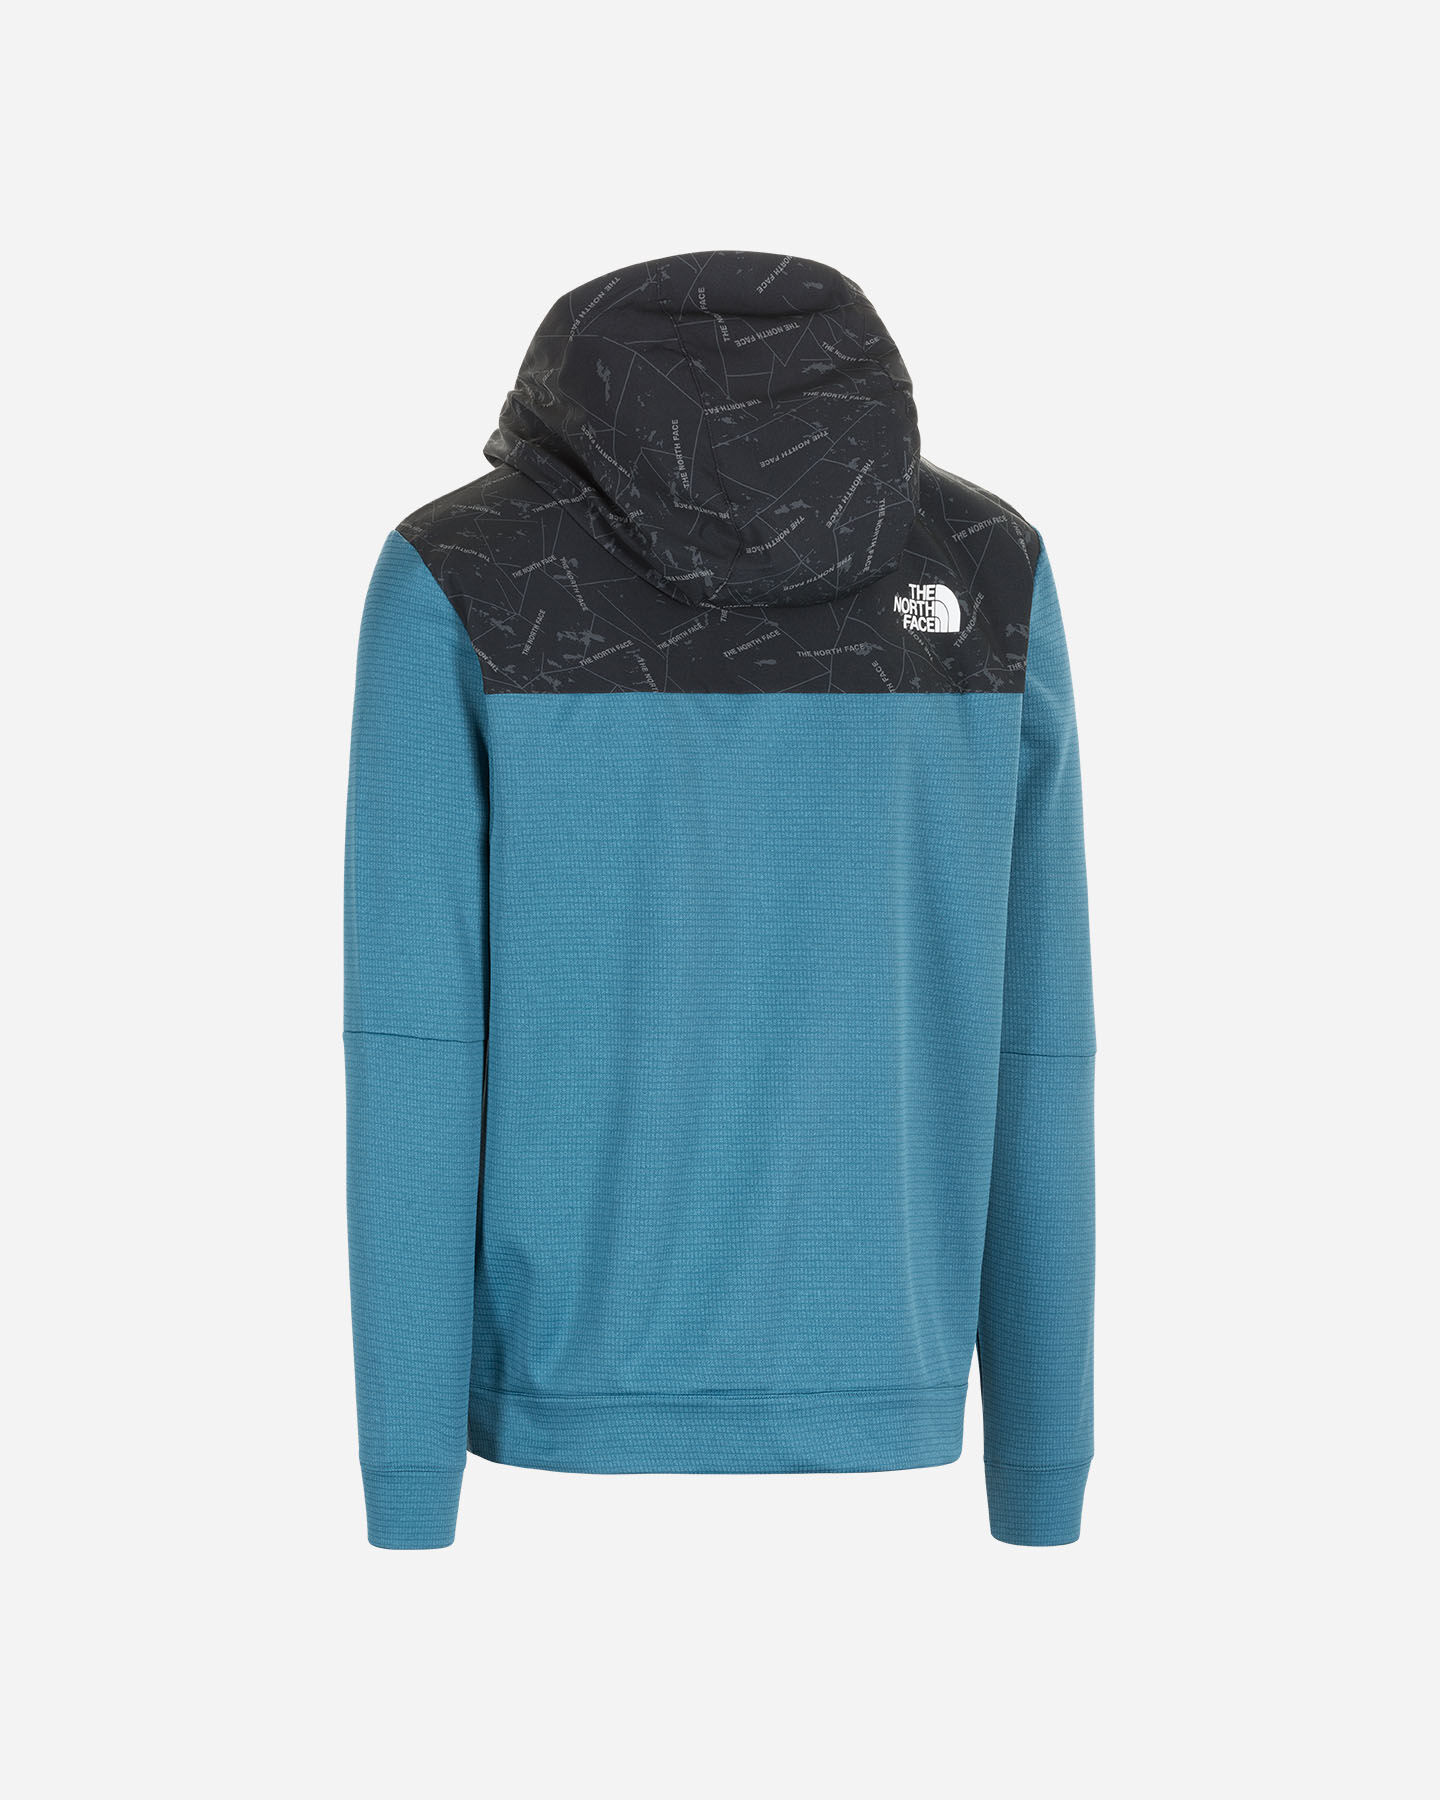 Pile THE NORTH FACE TRAIN LOGO OVERLAY M S5242987 scatto 1